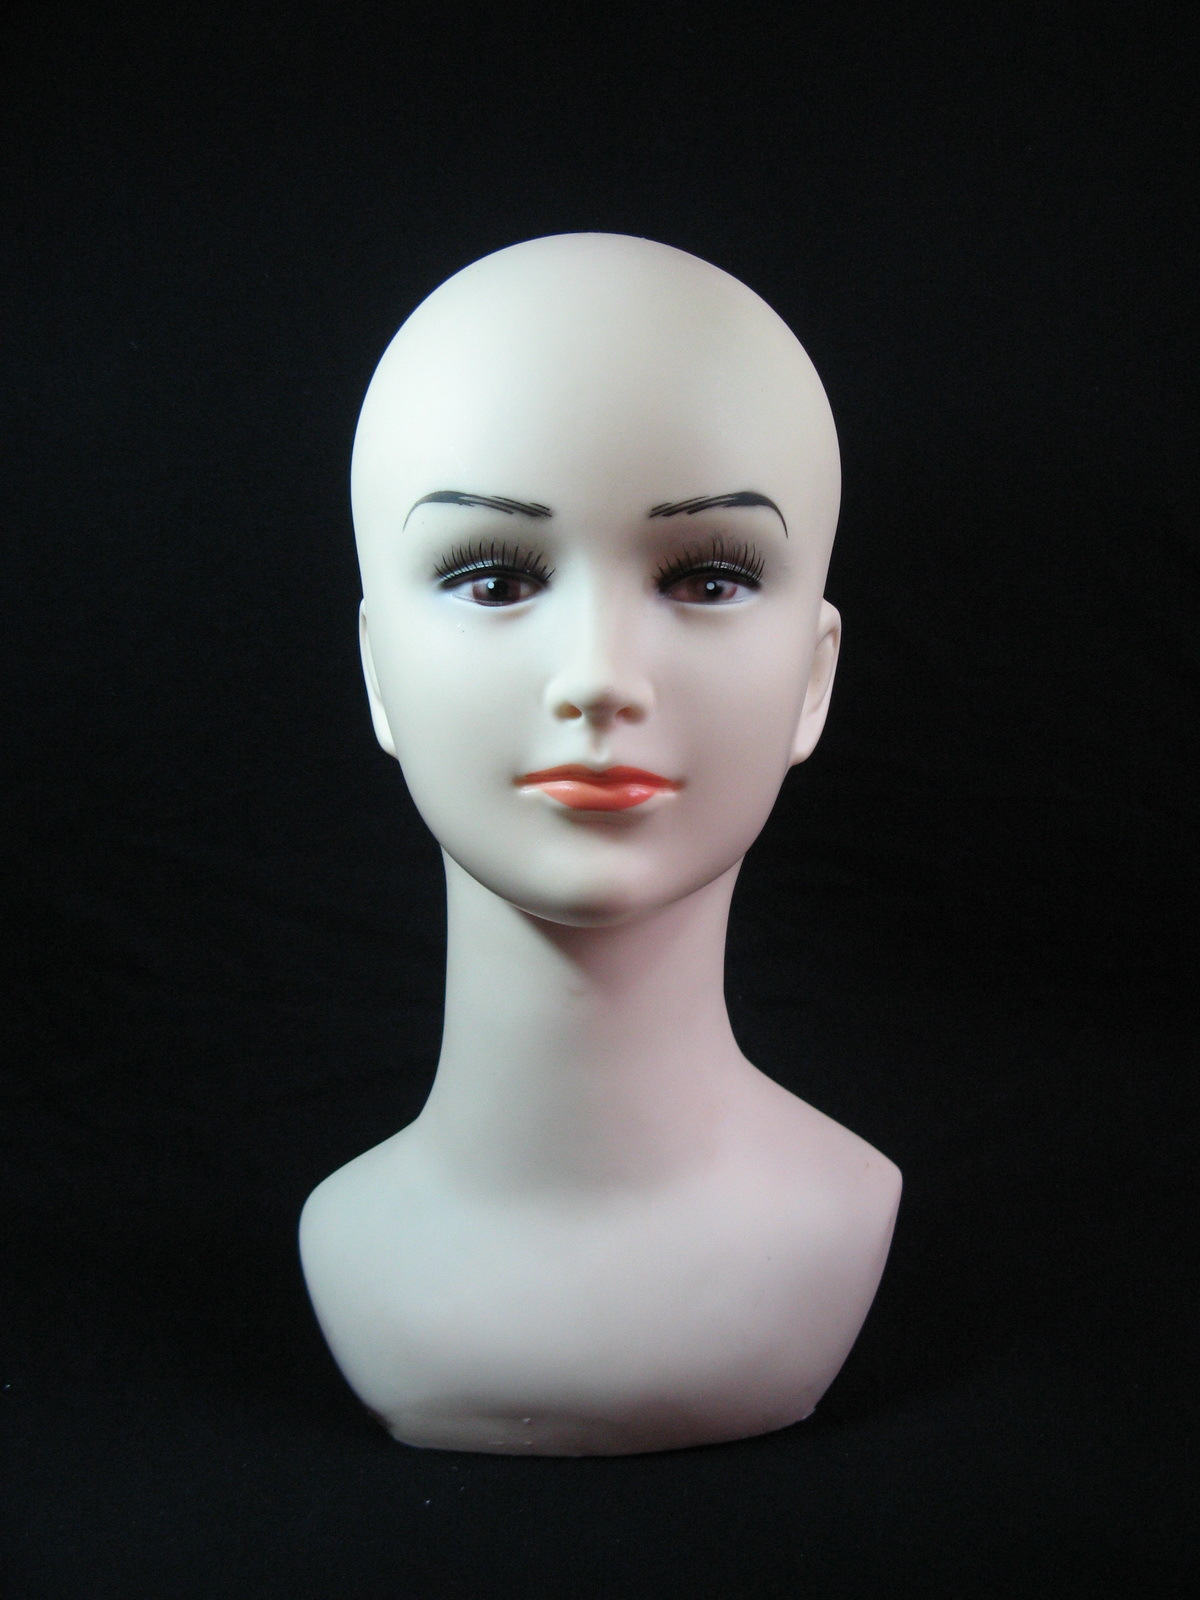 With a shoulder dummy head mannequin head display mannequin head wig hat glasses necklace jewelry display headform bald